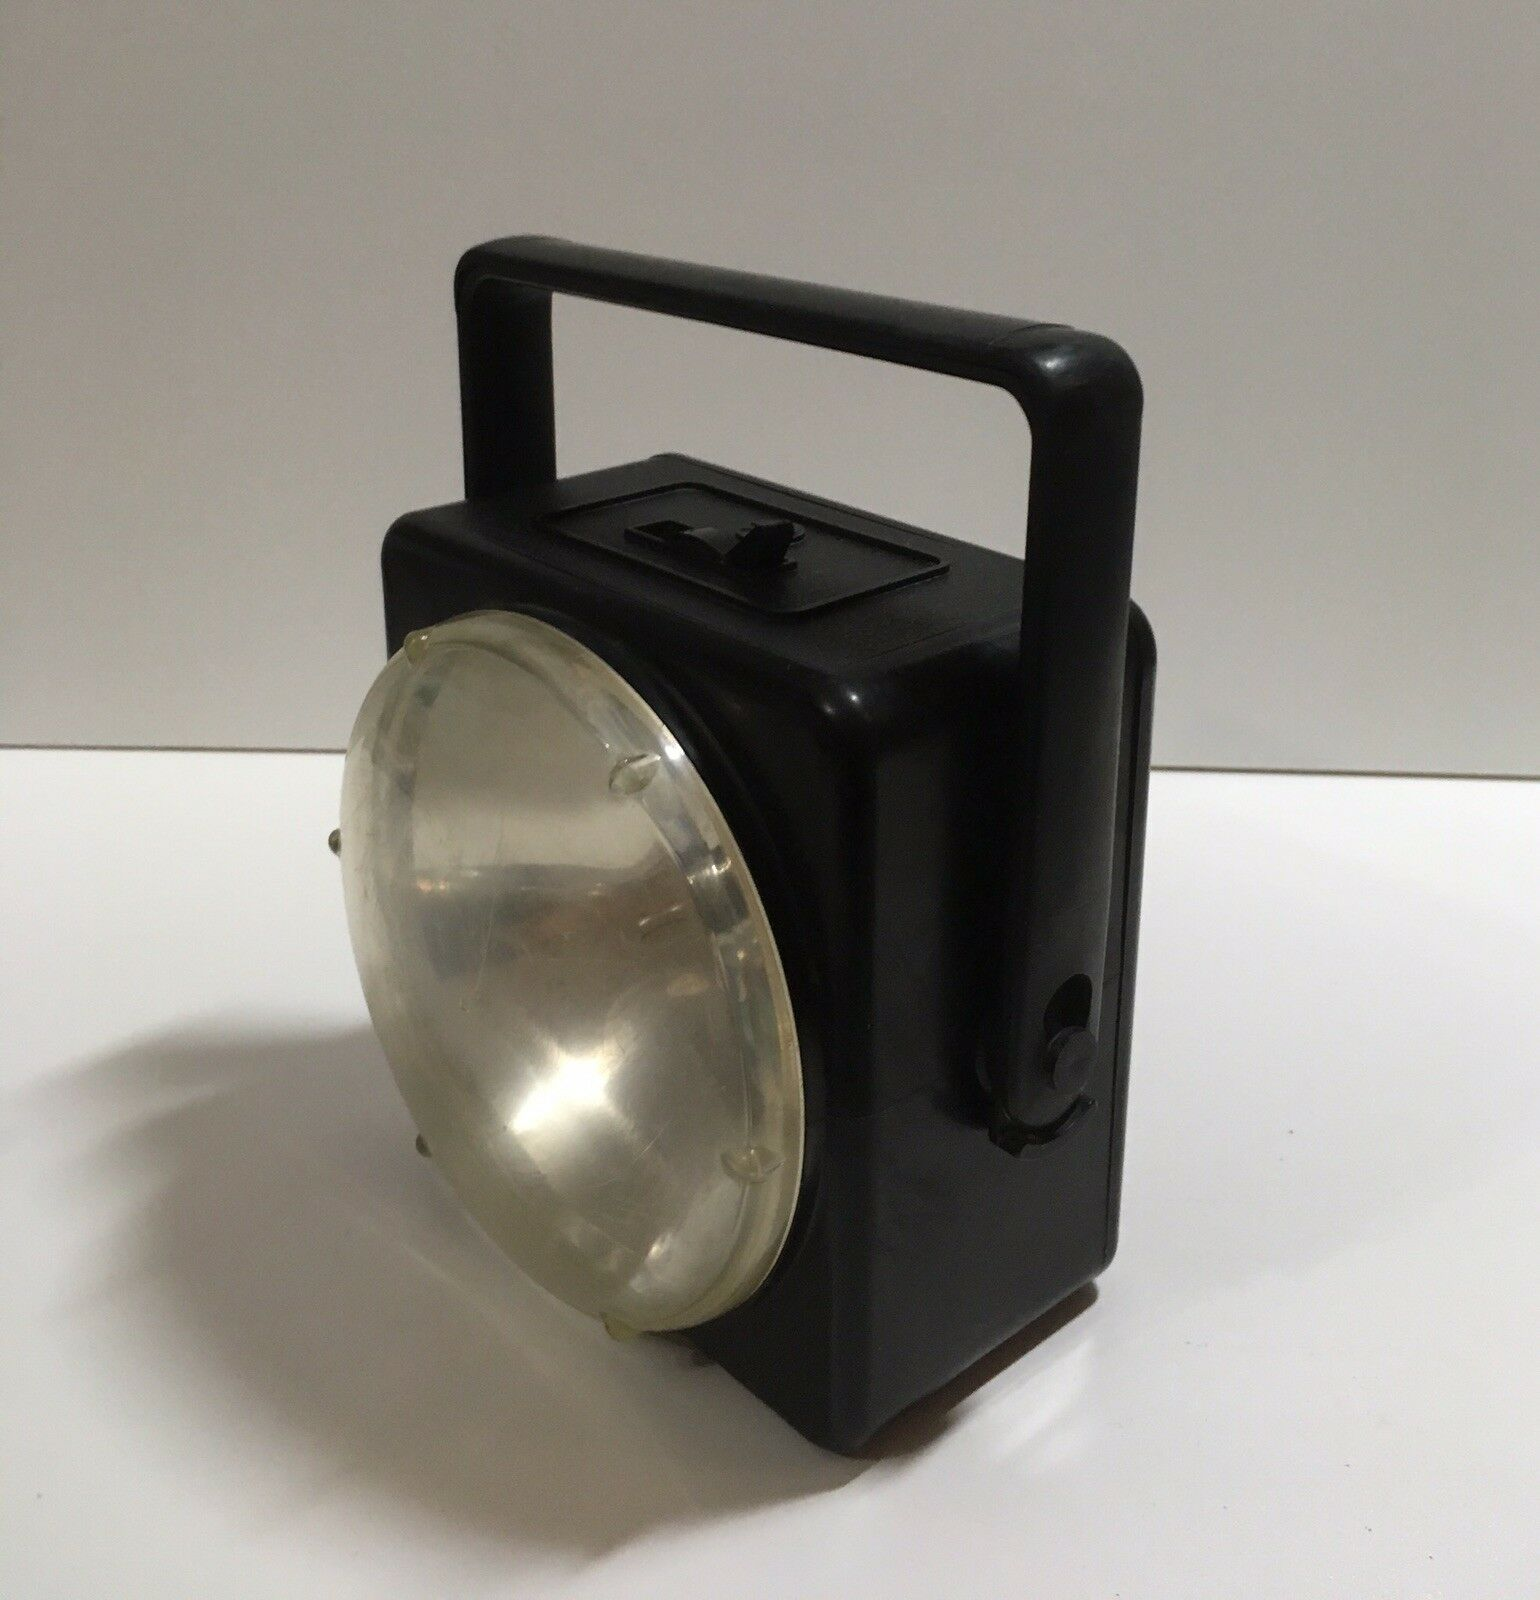 Vintage rare  hand spotlight (Made in USSR)  high-quality merchandise and convenient, honest service